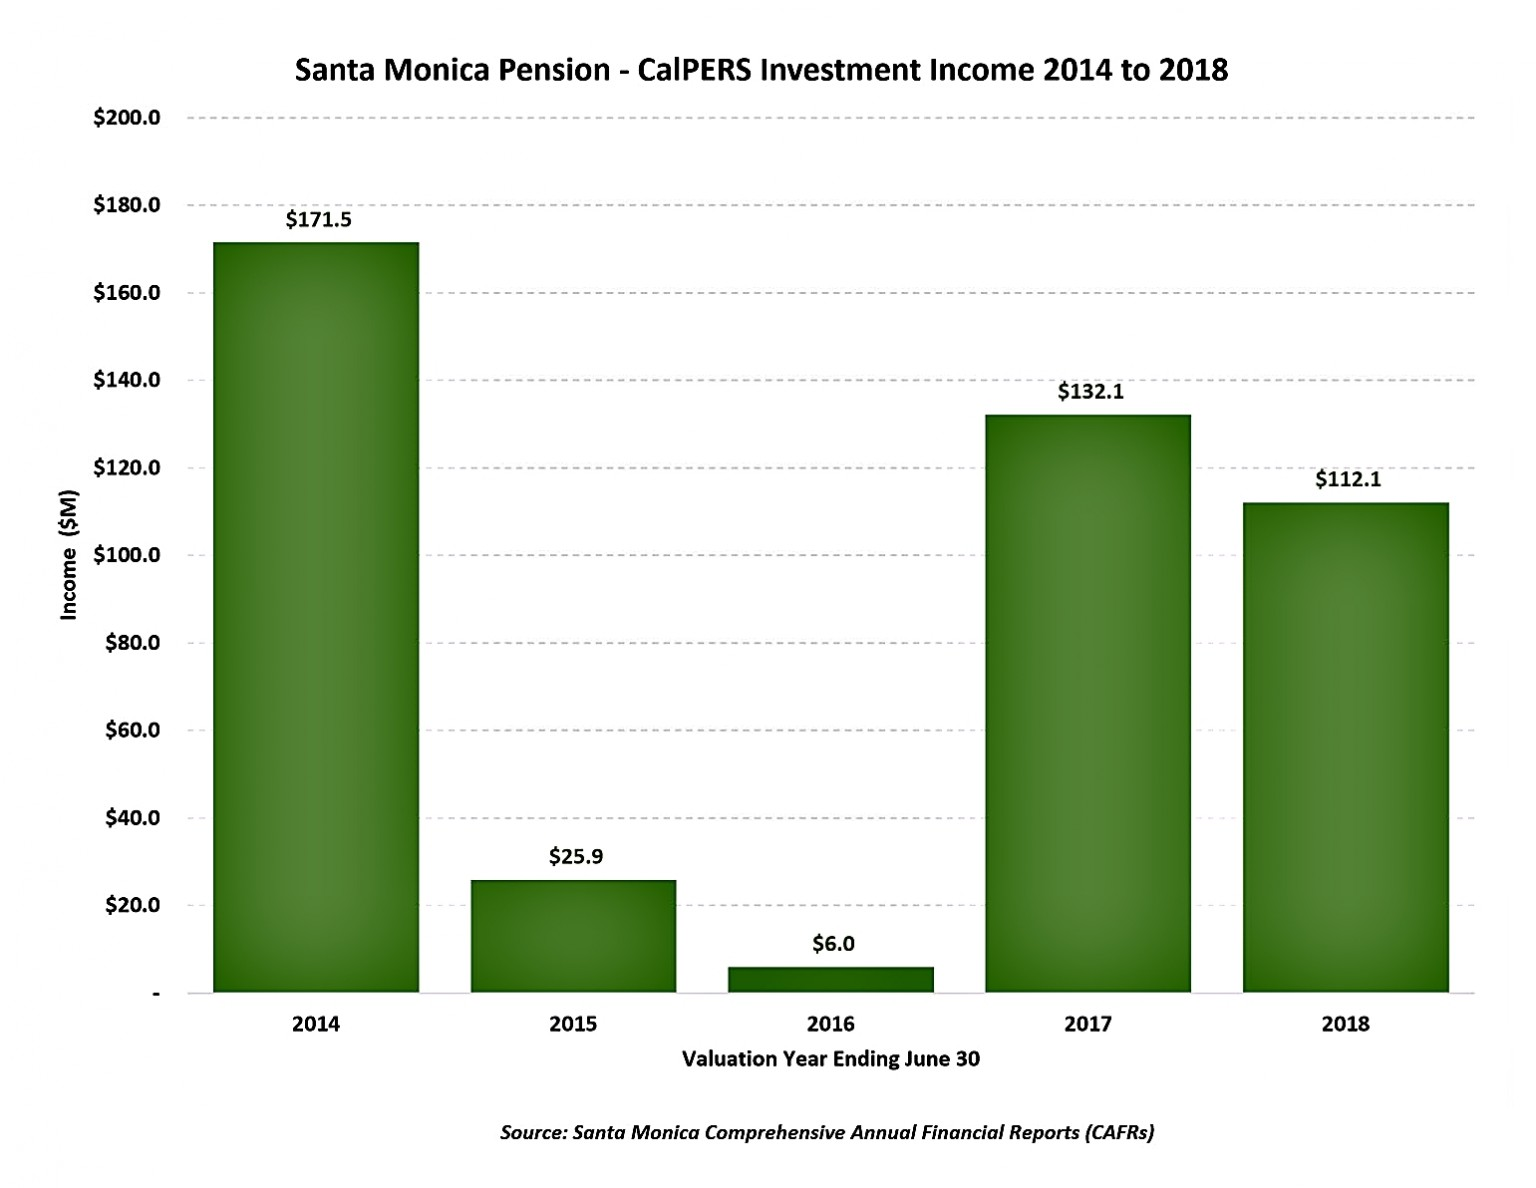 https://smmirror-enki-v5.s3.amazonaws.com/wp-content/uploads/2020/09/3.-SMA.r.t.-Pension-Finance-CalPERS-Investment-Income-annotated-adj-1024x792.jpg